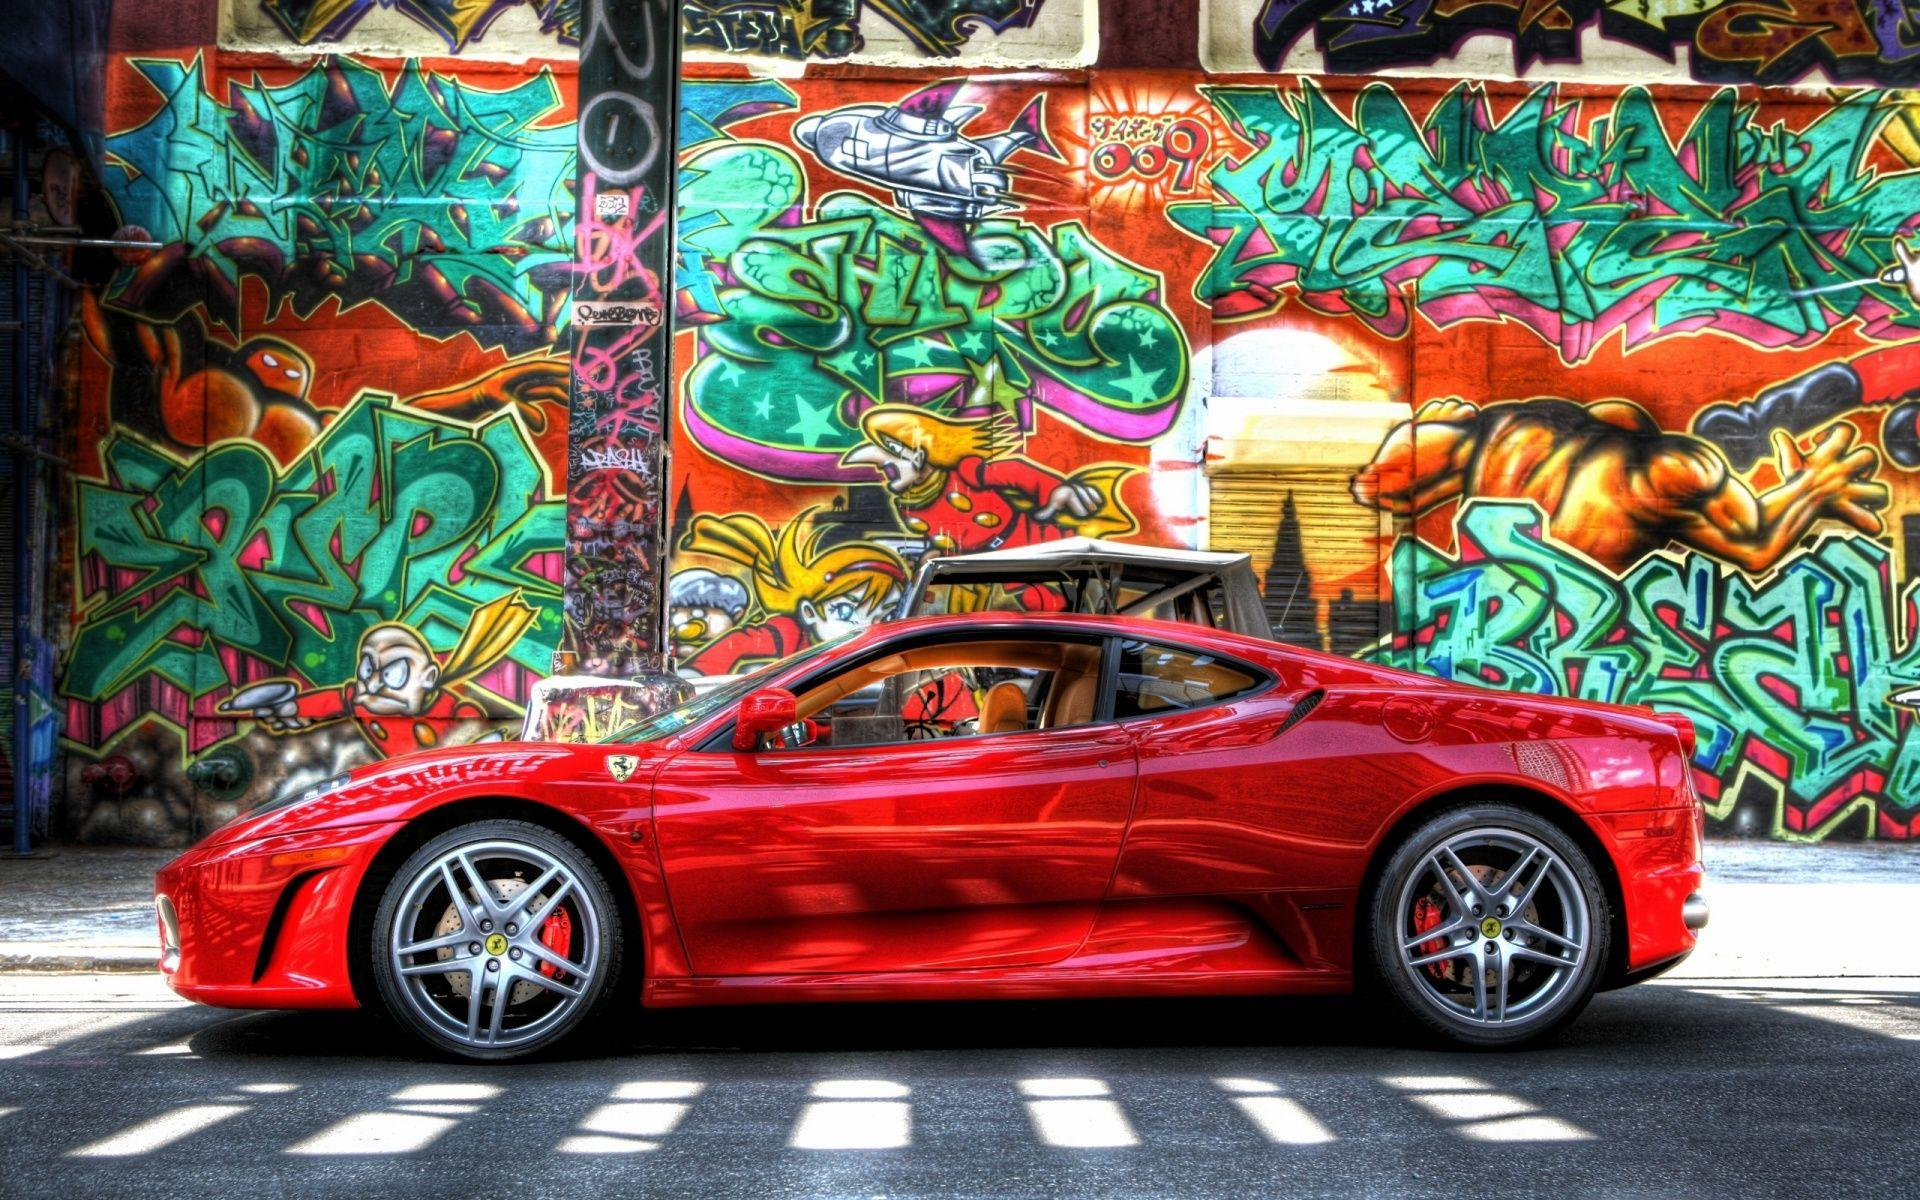 Download Ferrari Graffiti Wallpaper | Full HD Wallpapers